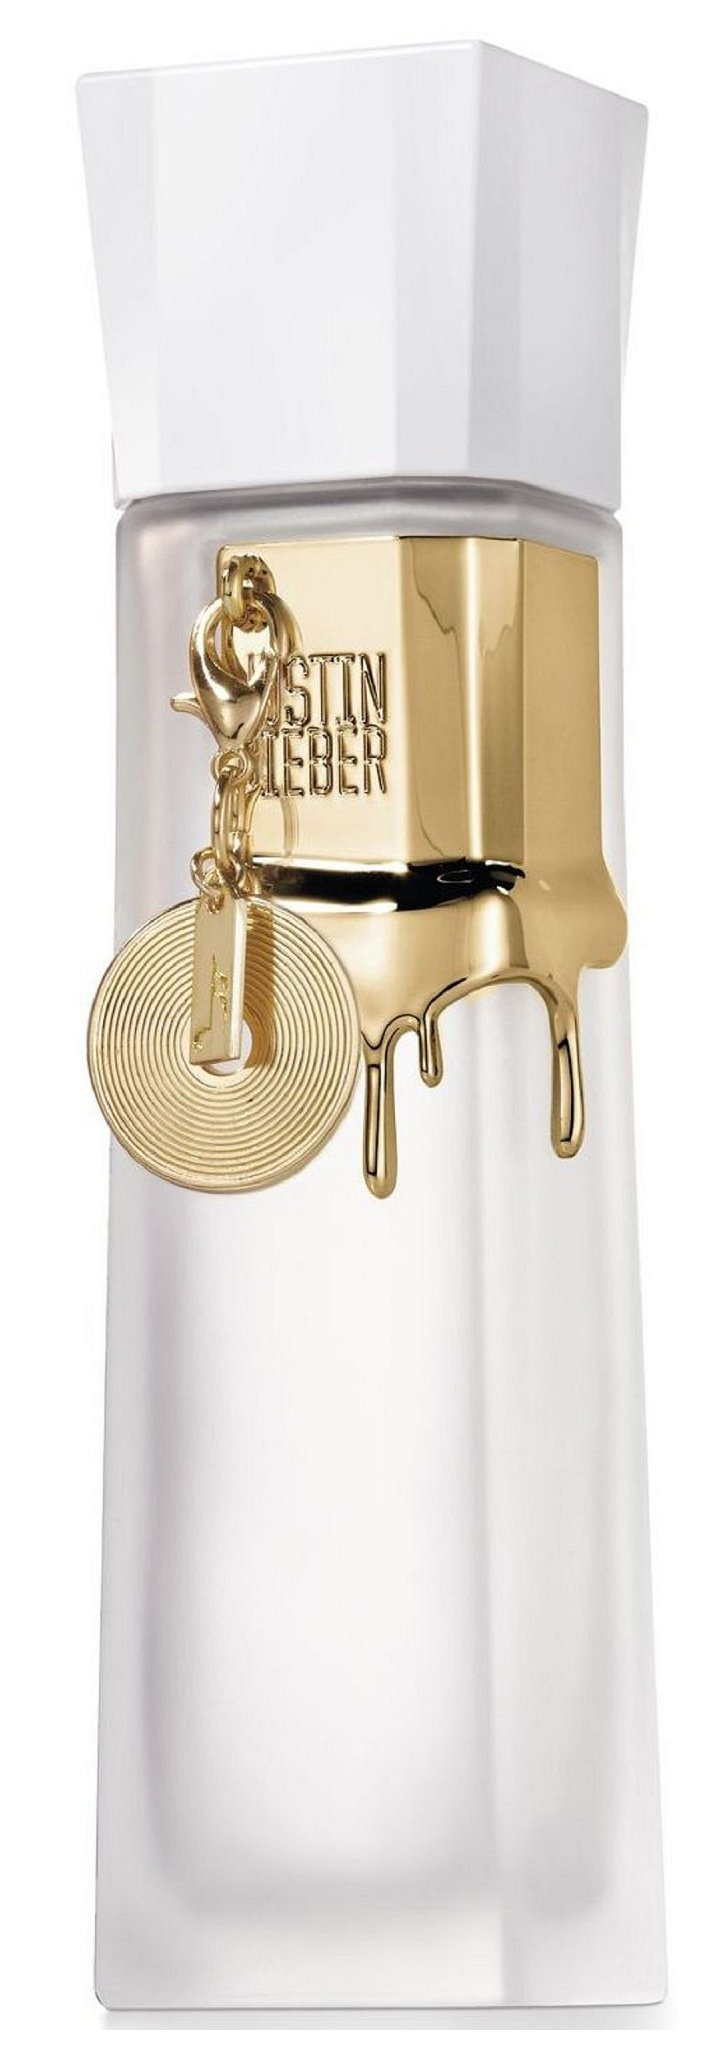 Justin Bieber Collector's Edition Eau de Parfum Spray, 3.4 Ounce